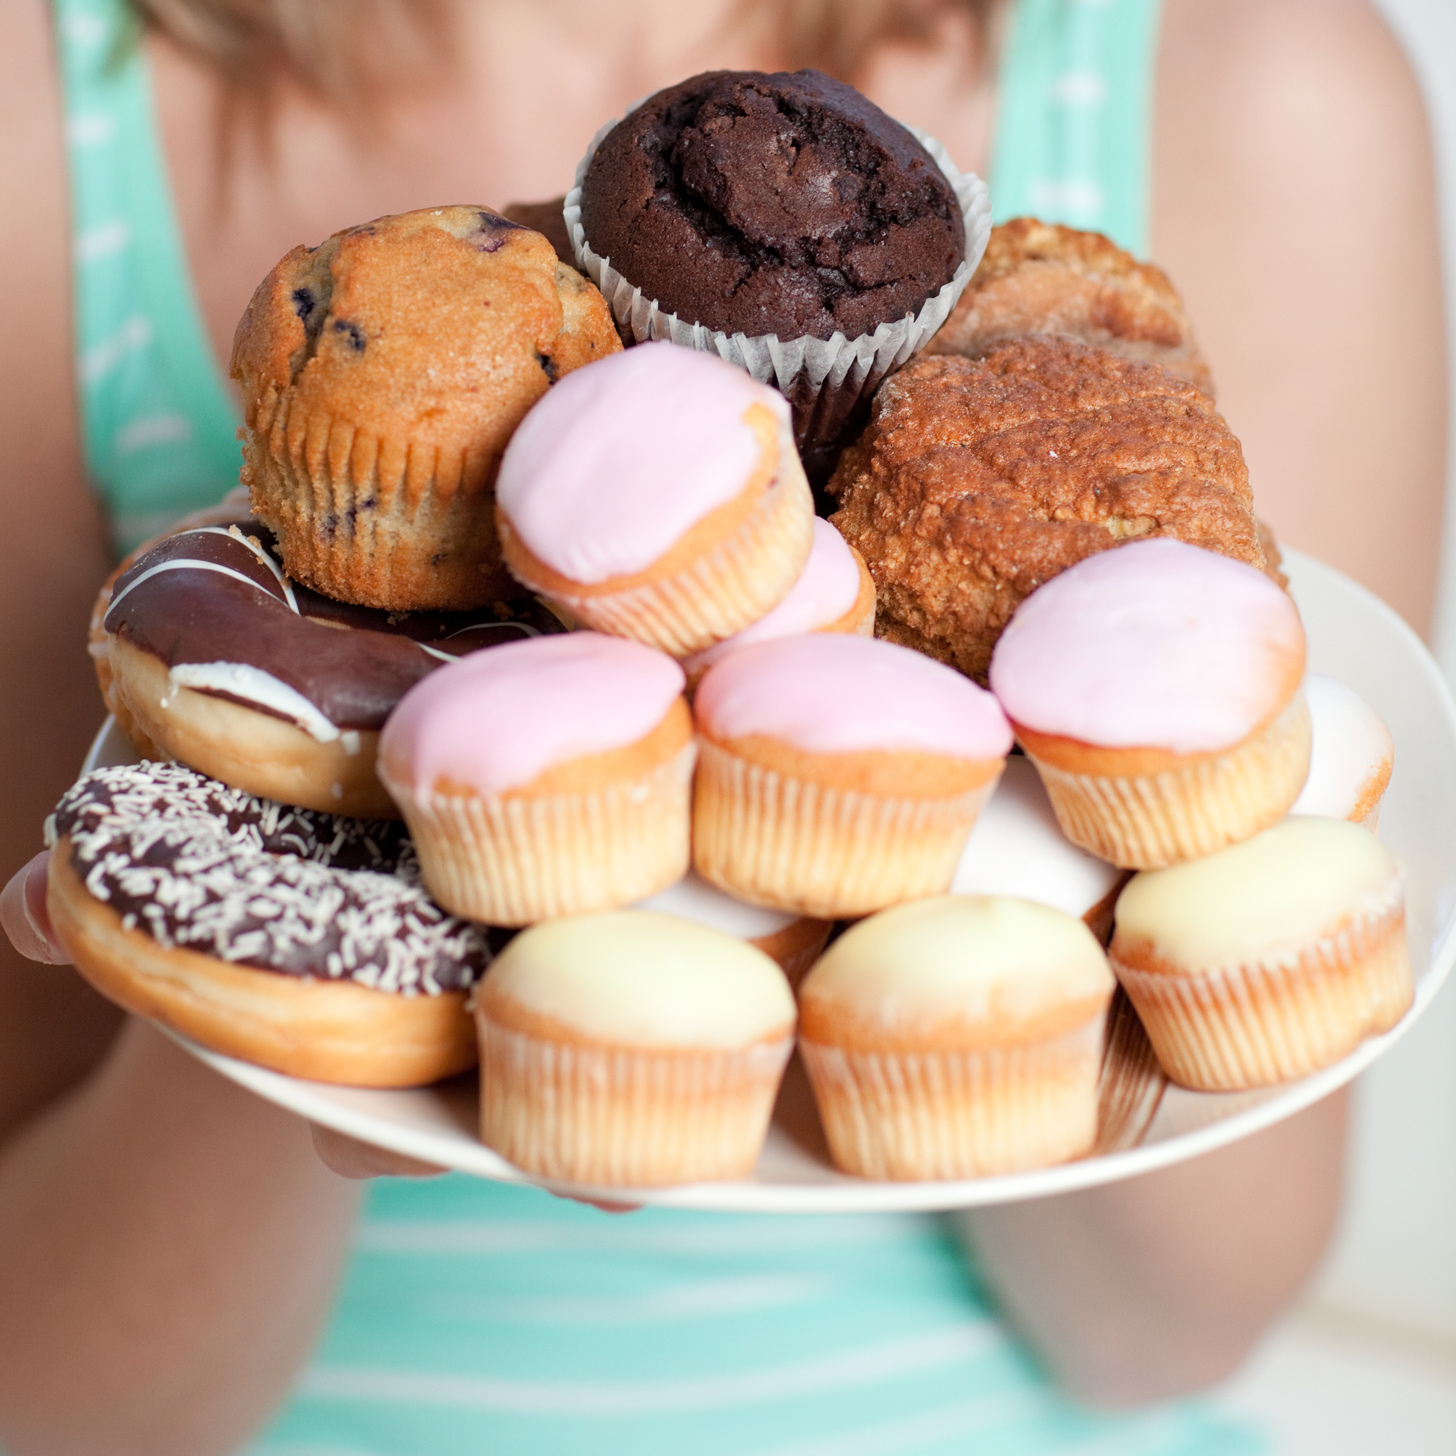 Sugar-Filled and Fatty Foods